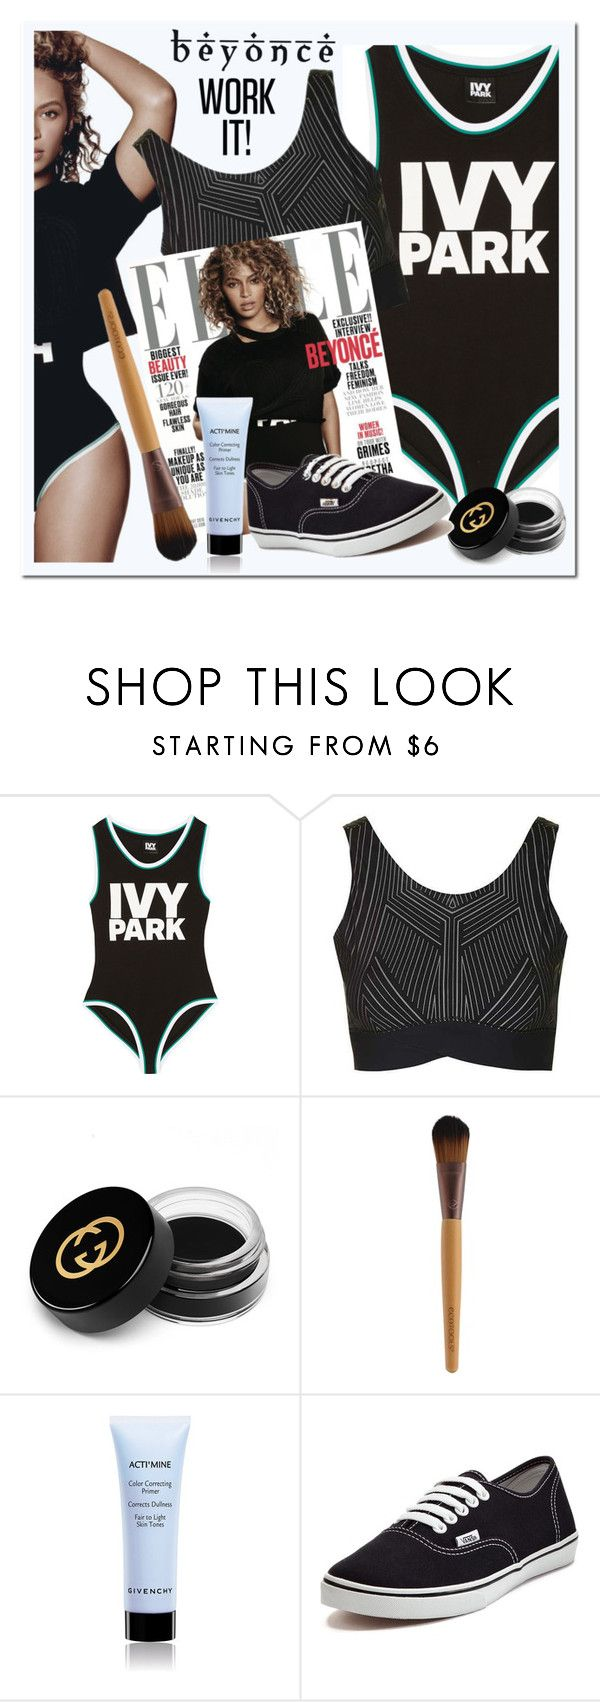 """""""Slay All Day: Style Beyonce's Ivy Park!"""" by ewa-naukowicz-wojcik ❤ liked on Polyvore featuring Ivy Park, Topshop, Gucci, Givenchy, Vans and Beyonce"""